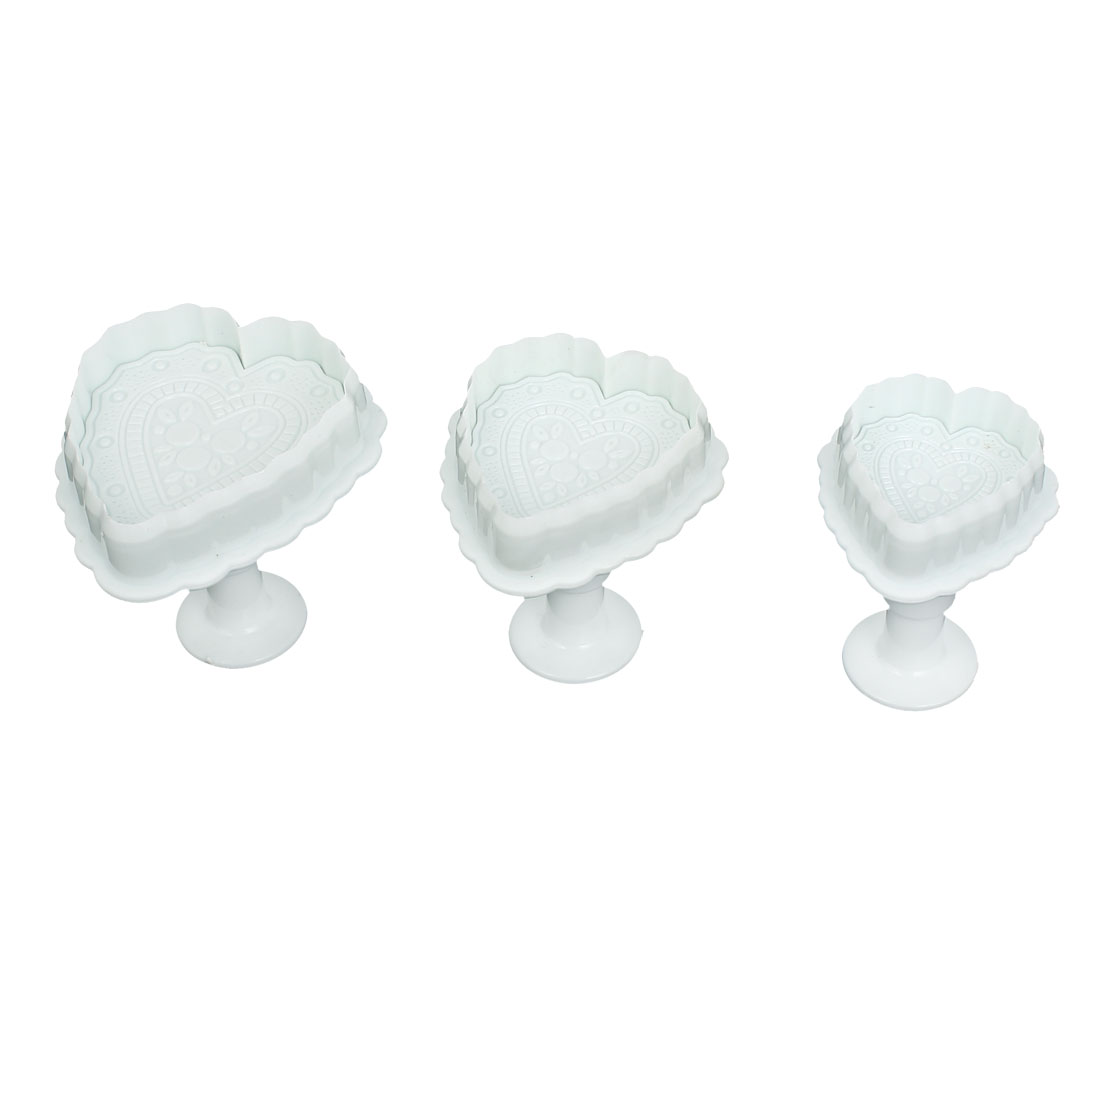 3Pcs Heart Shape Fondant Cake Decorating Mold Mould Sugarcraft Plunger Cutter Tools